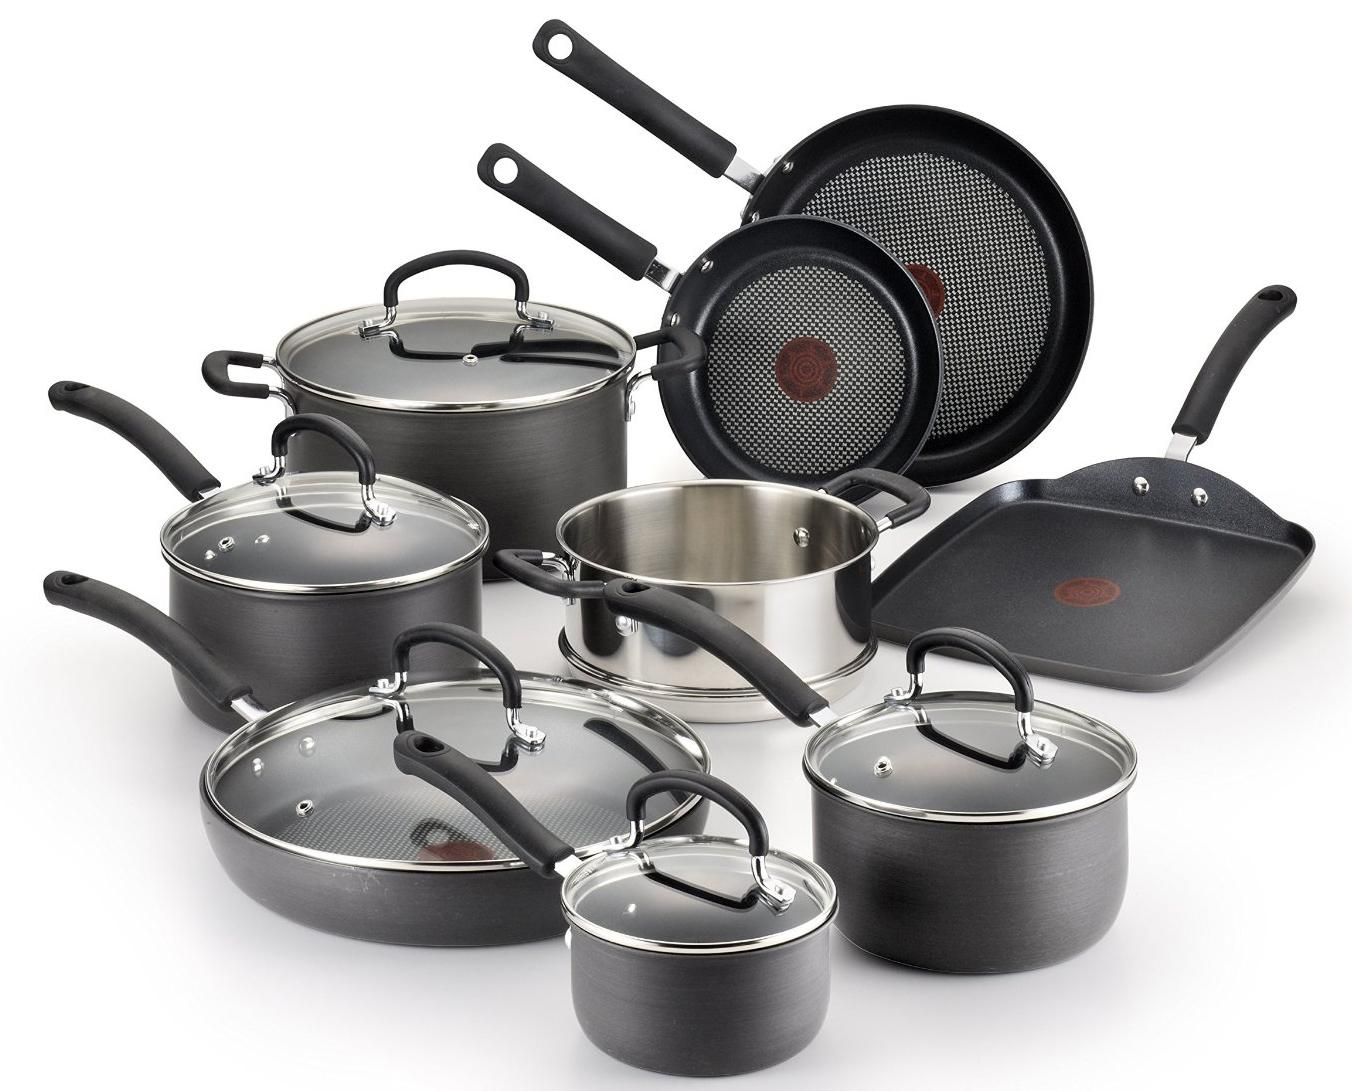 New Cookware Pots Pans Ultimate Nonstick Dishwasher Oven